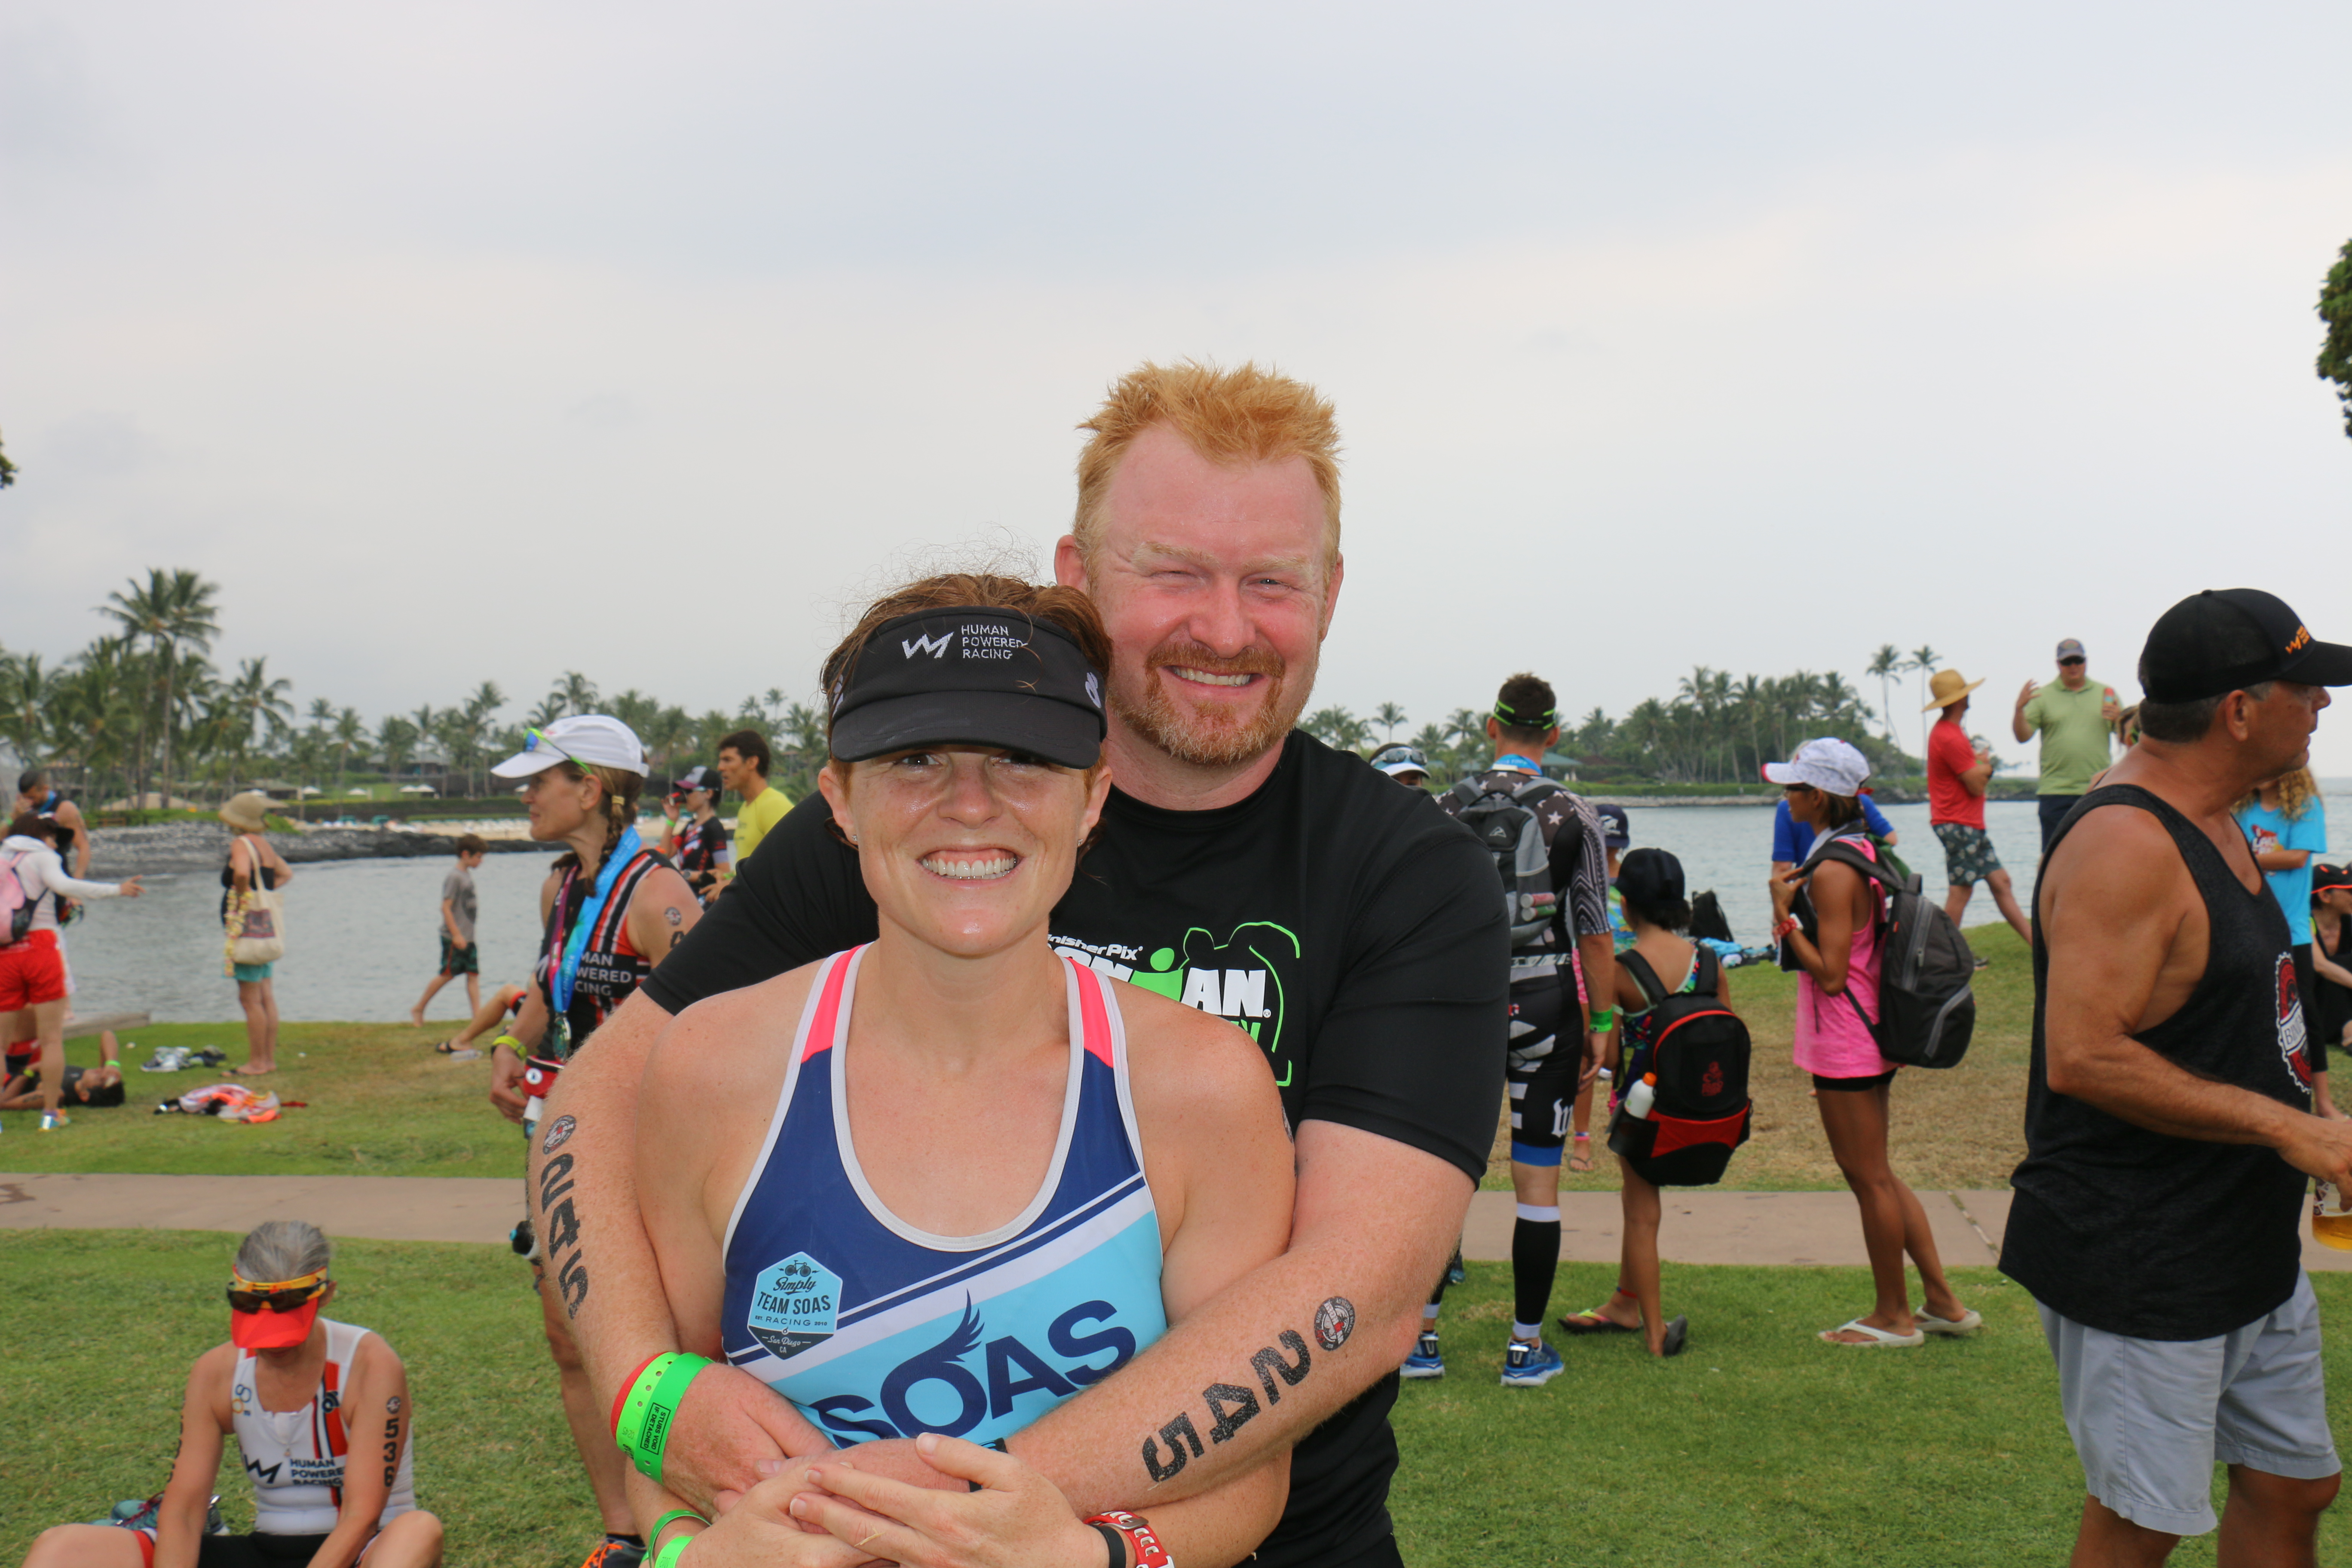 Colette Hopkins and Mark Hopkins at the finish of the Hawaii 70.3 in Waikoloa, Hawaii